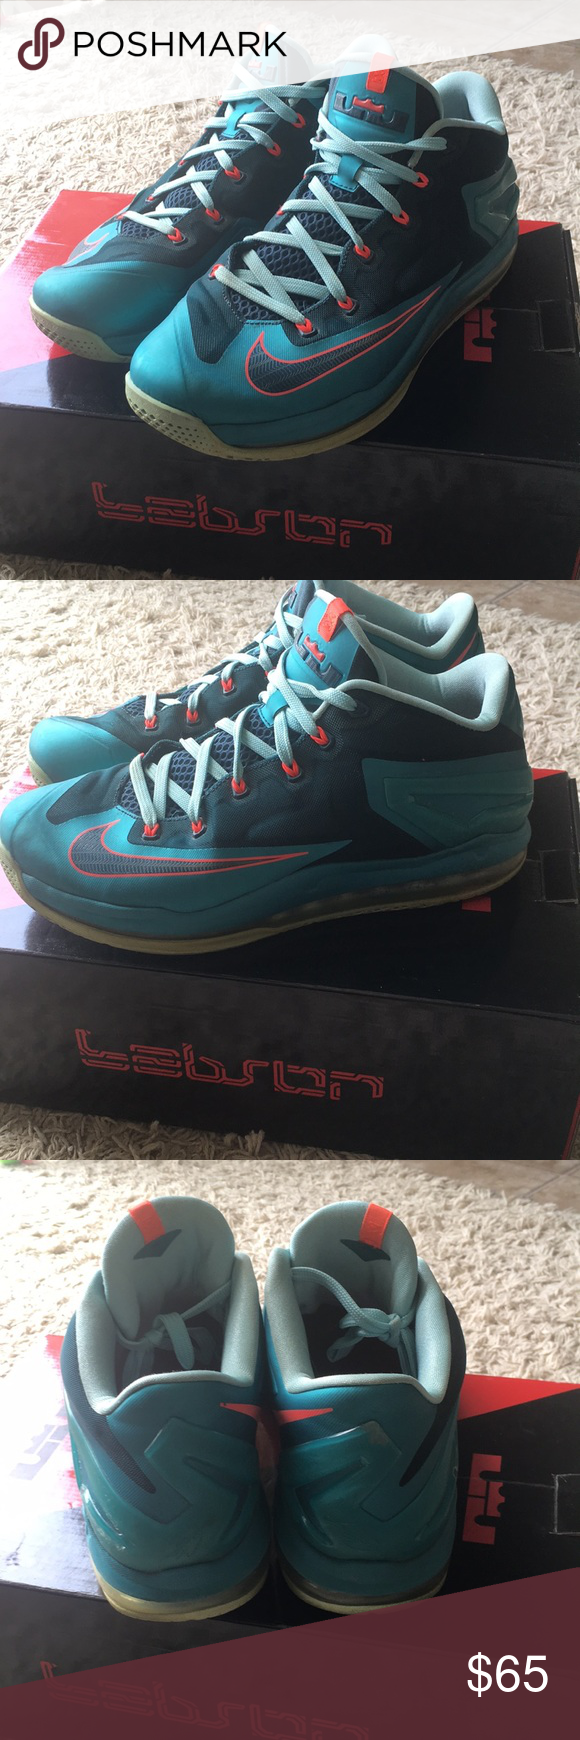 outlet store 996d9 f33de Nike Lebron In great shape. Lebron 12 South Beach Low style ...